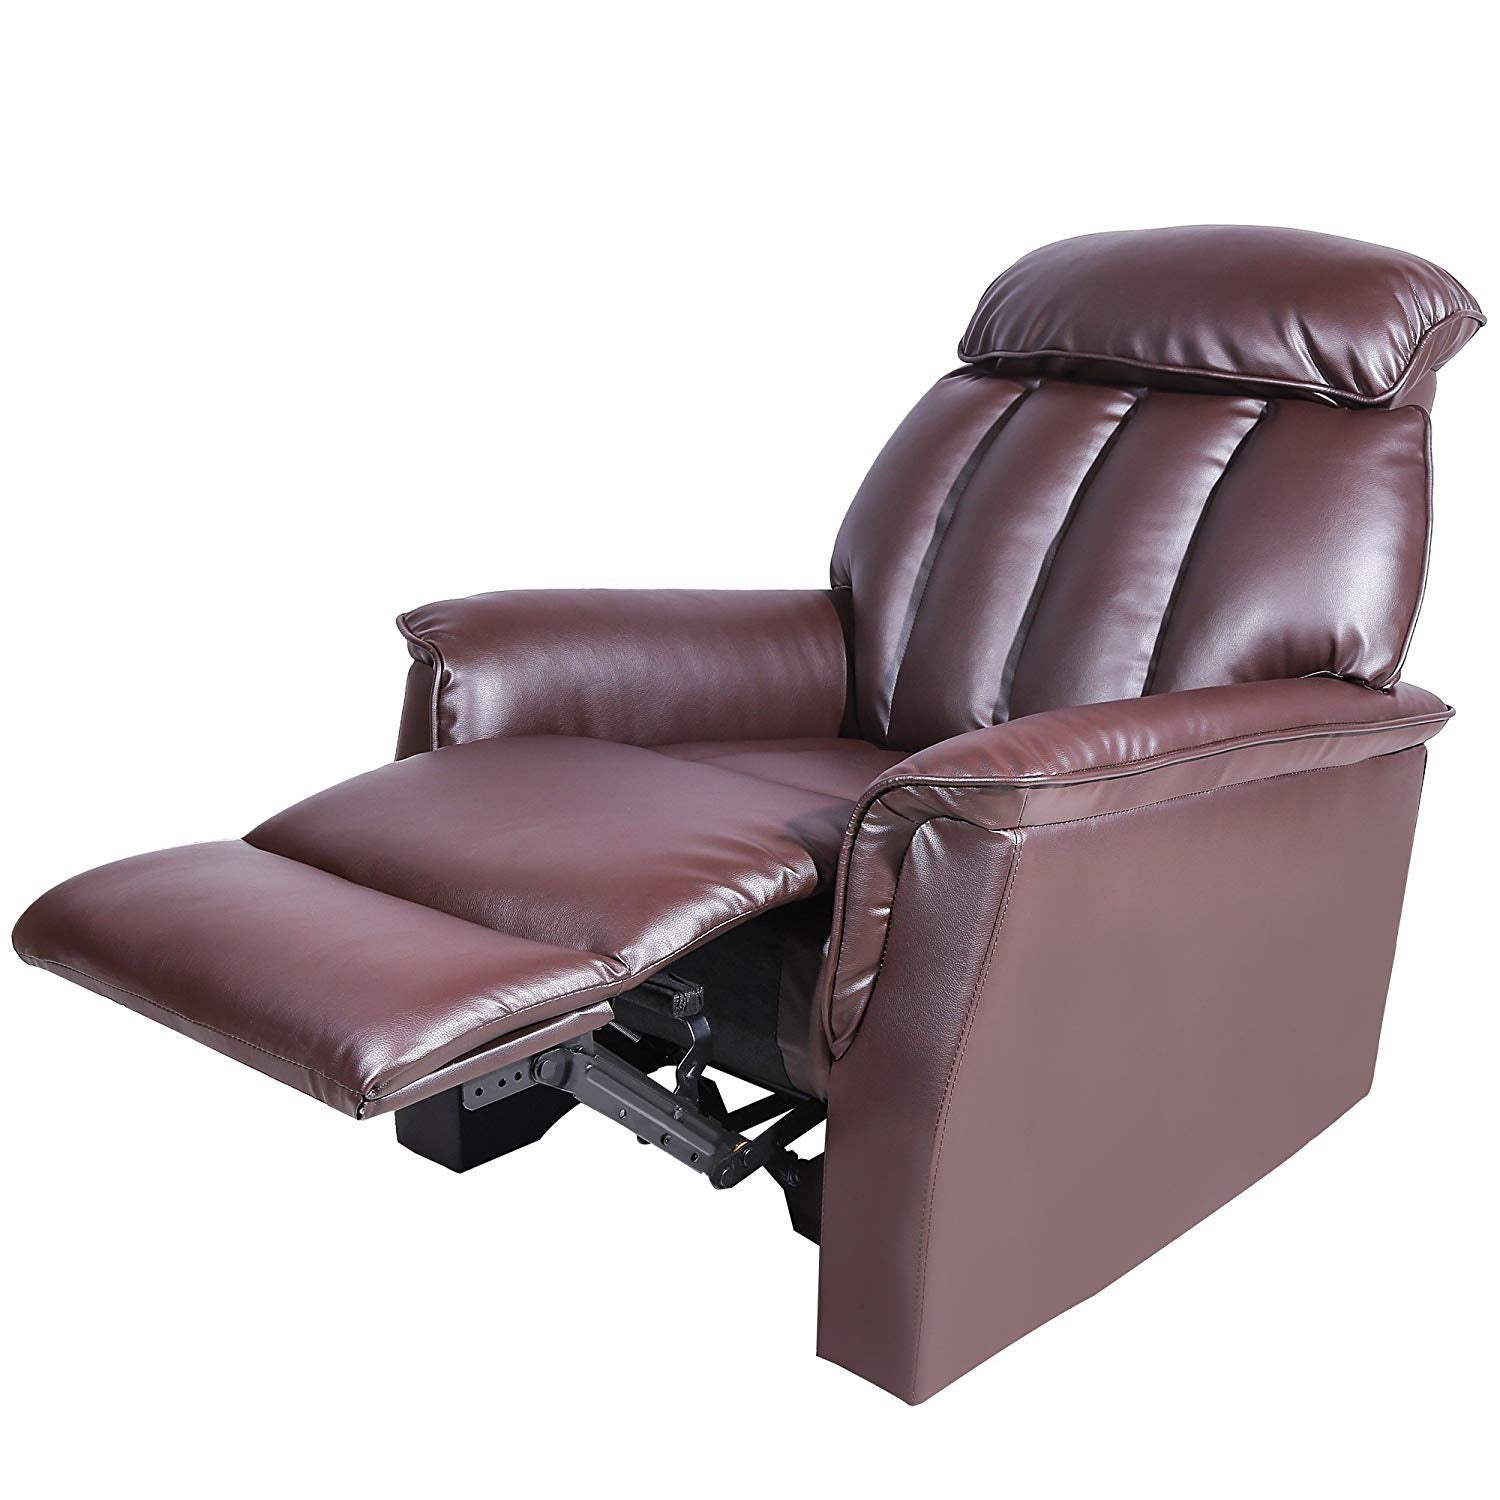 Harper&Bright designs Ergonomic Adjustable Recliner Sofa Chair with PU Leather (Brown)